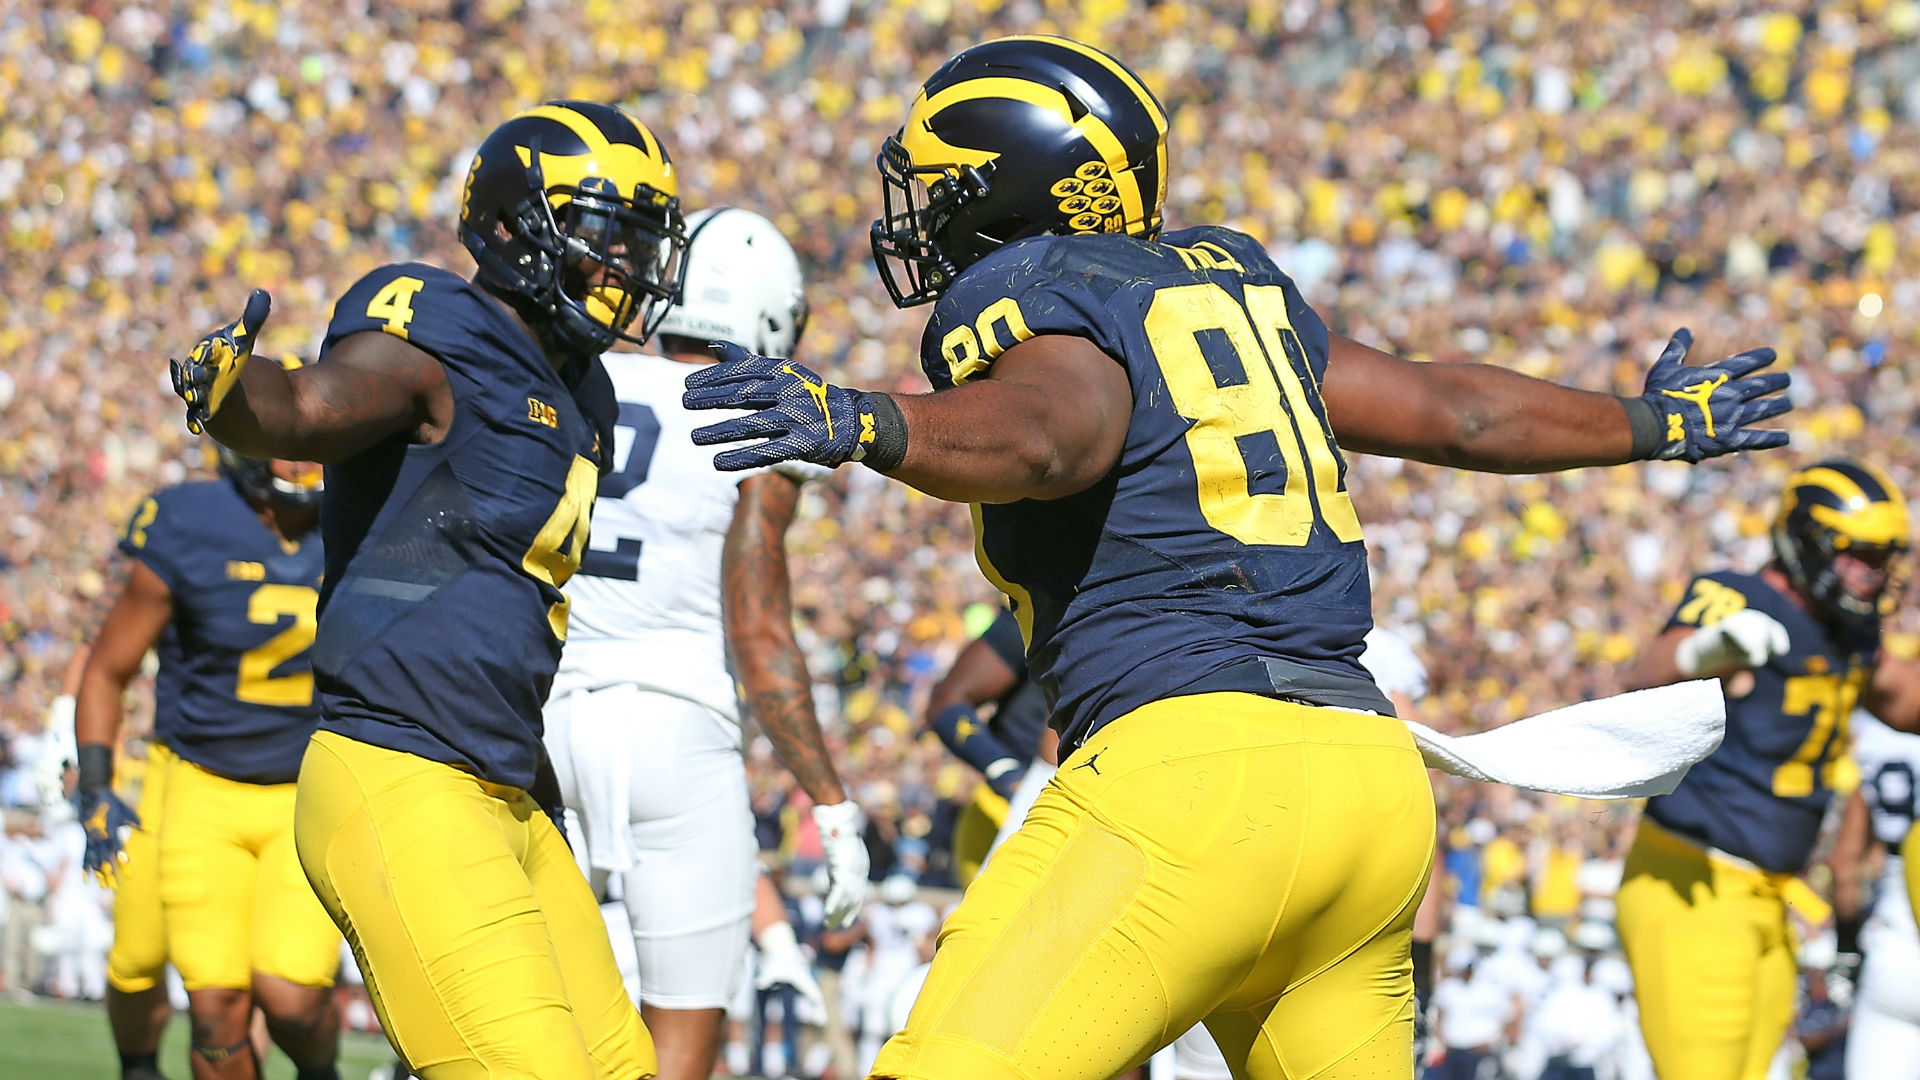 No. 4 Michigan runs over Penn St. 49-10